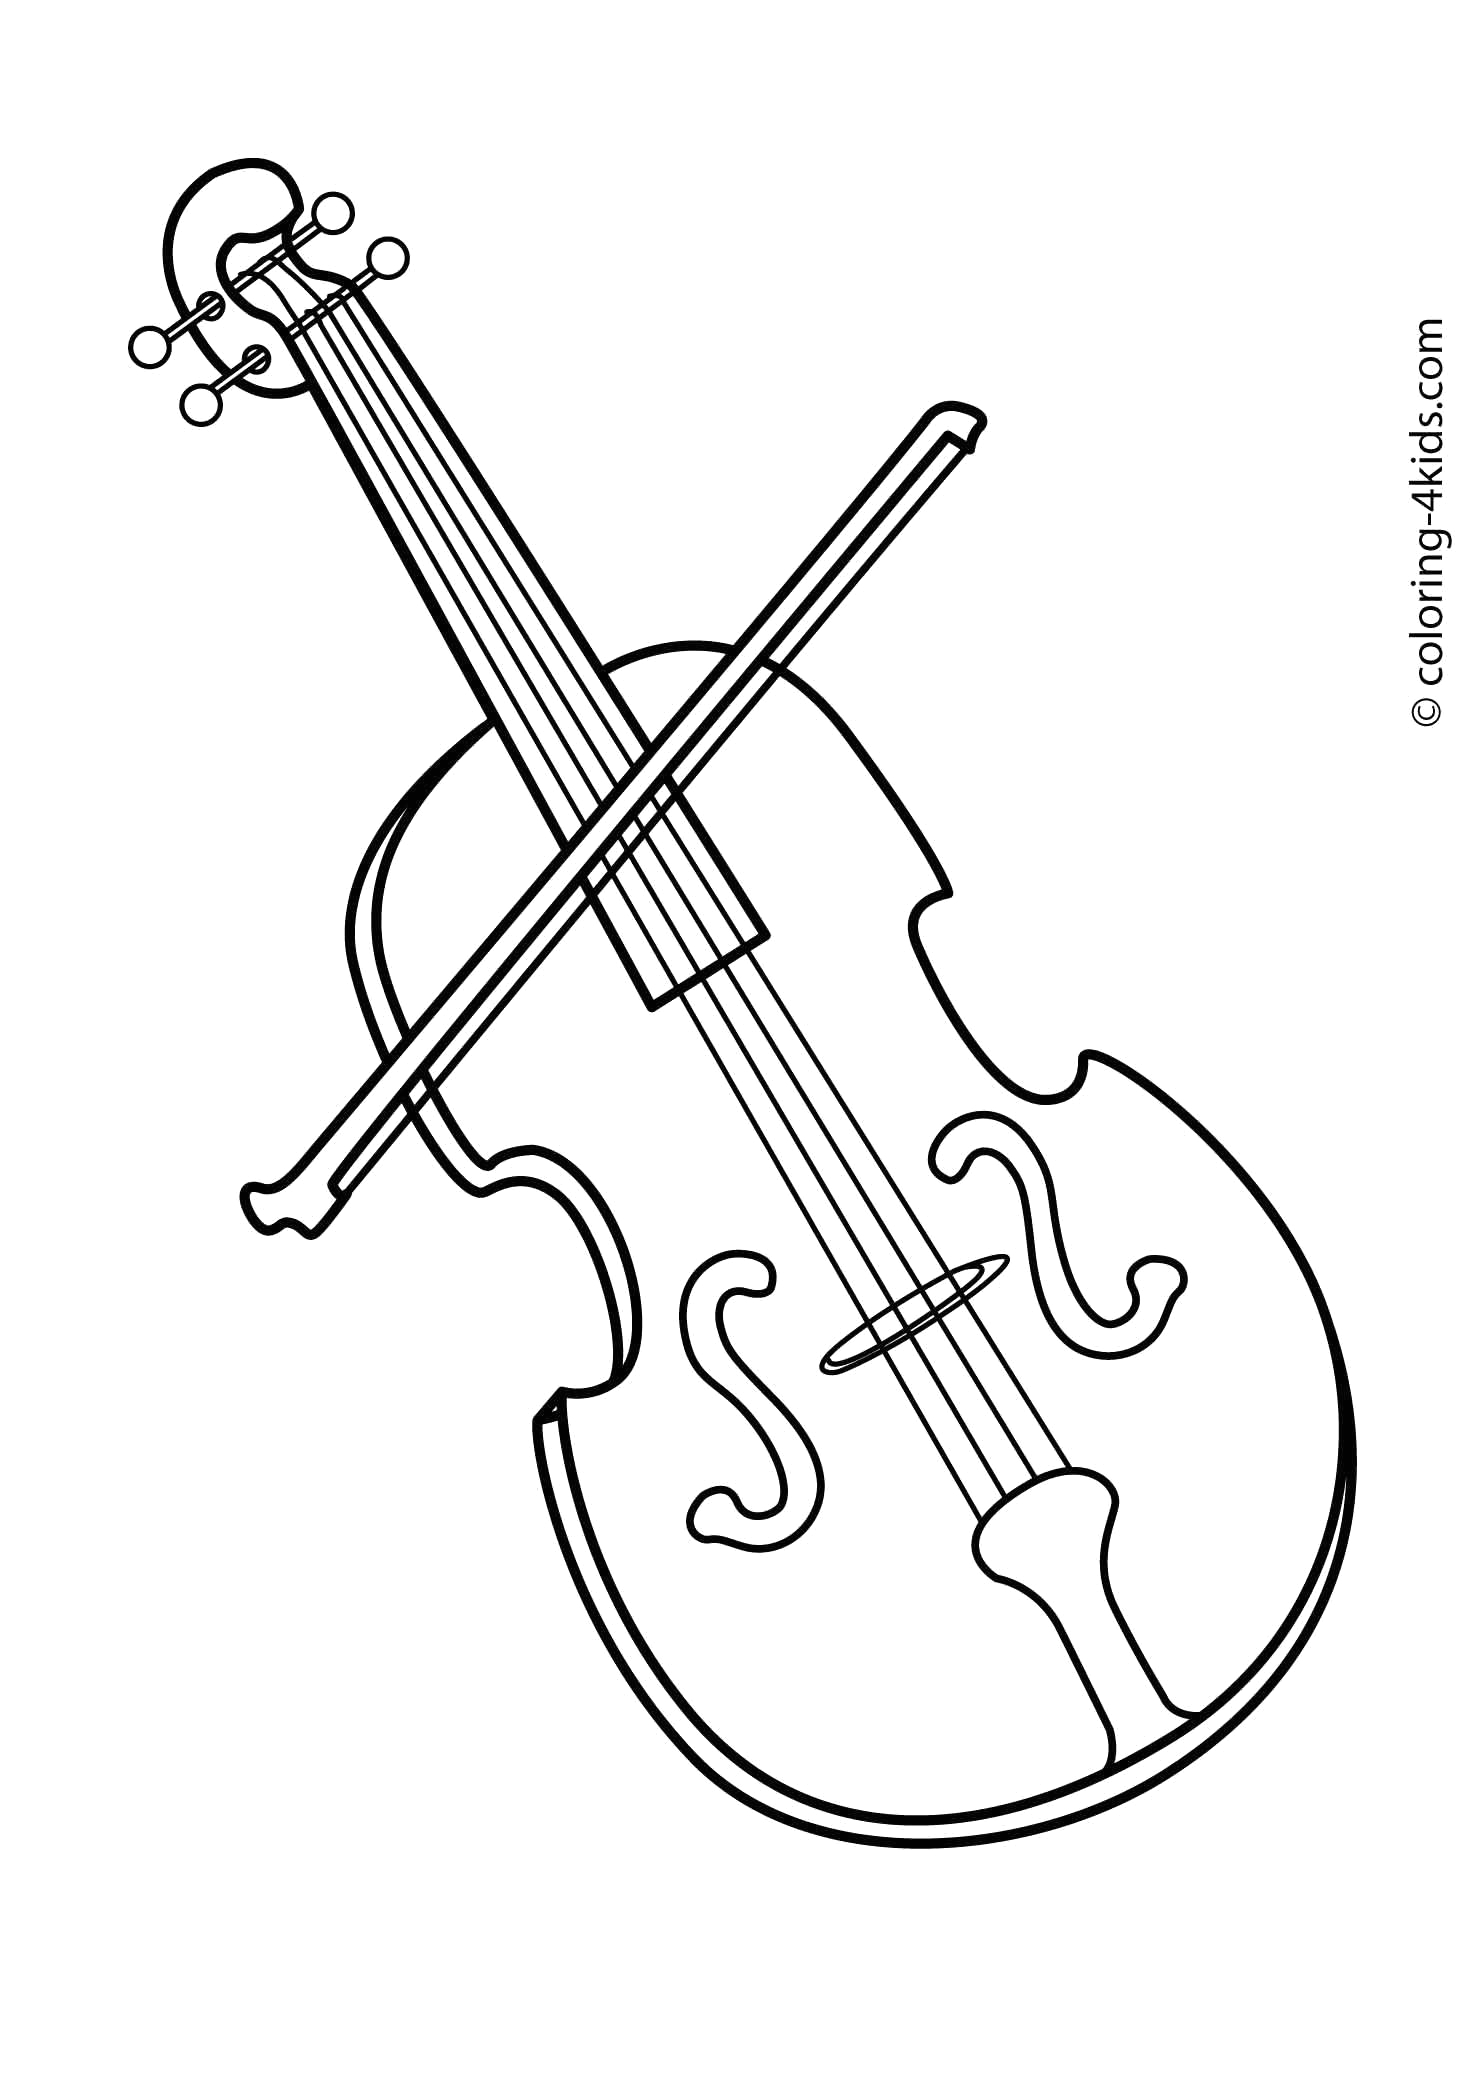 Free Printable Coloring Pages Of Musical Instruments Musical Instruments Drawings Cliparts